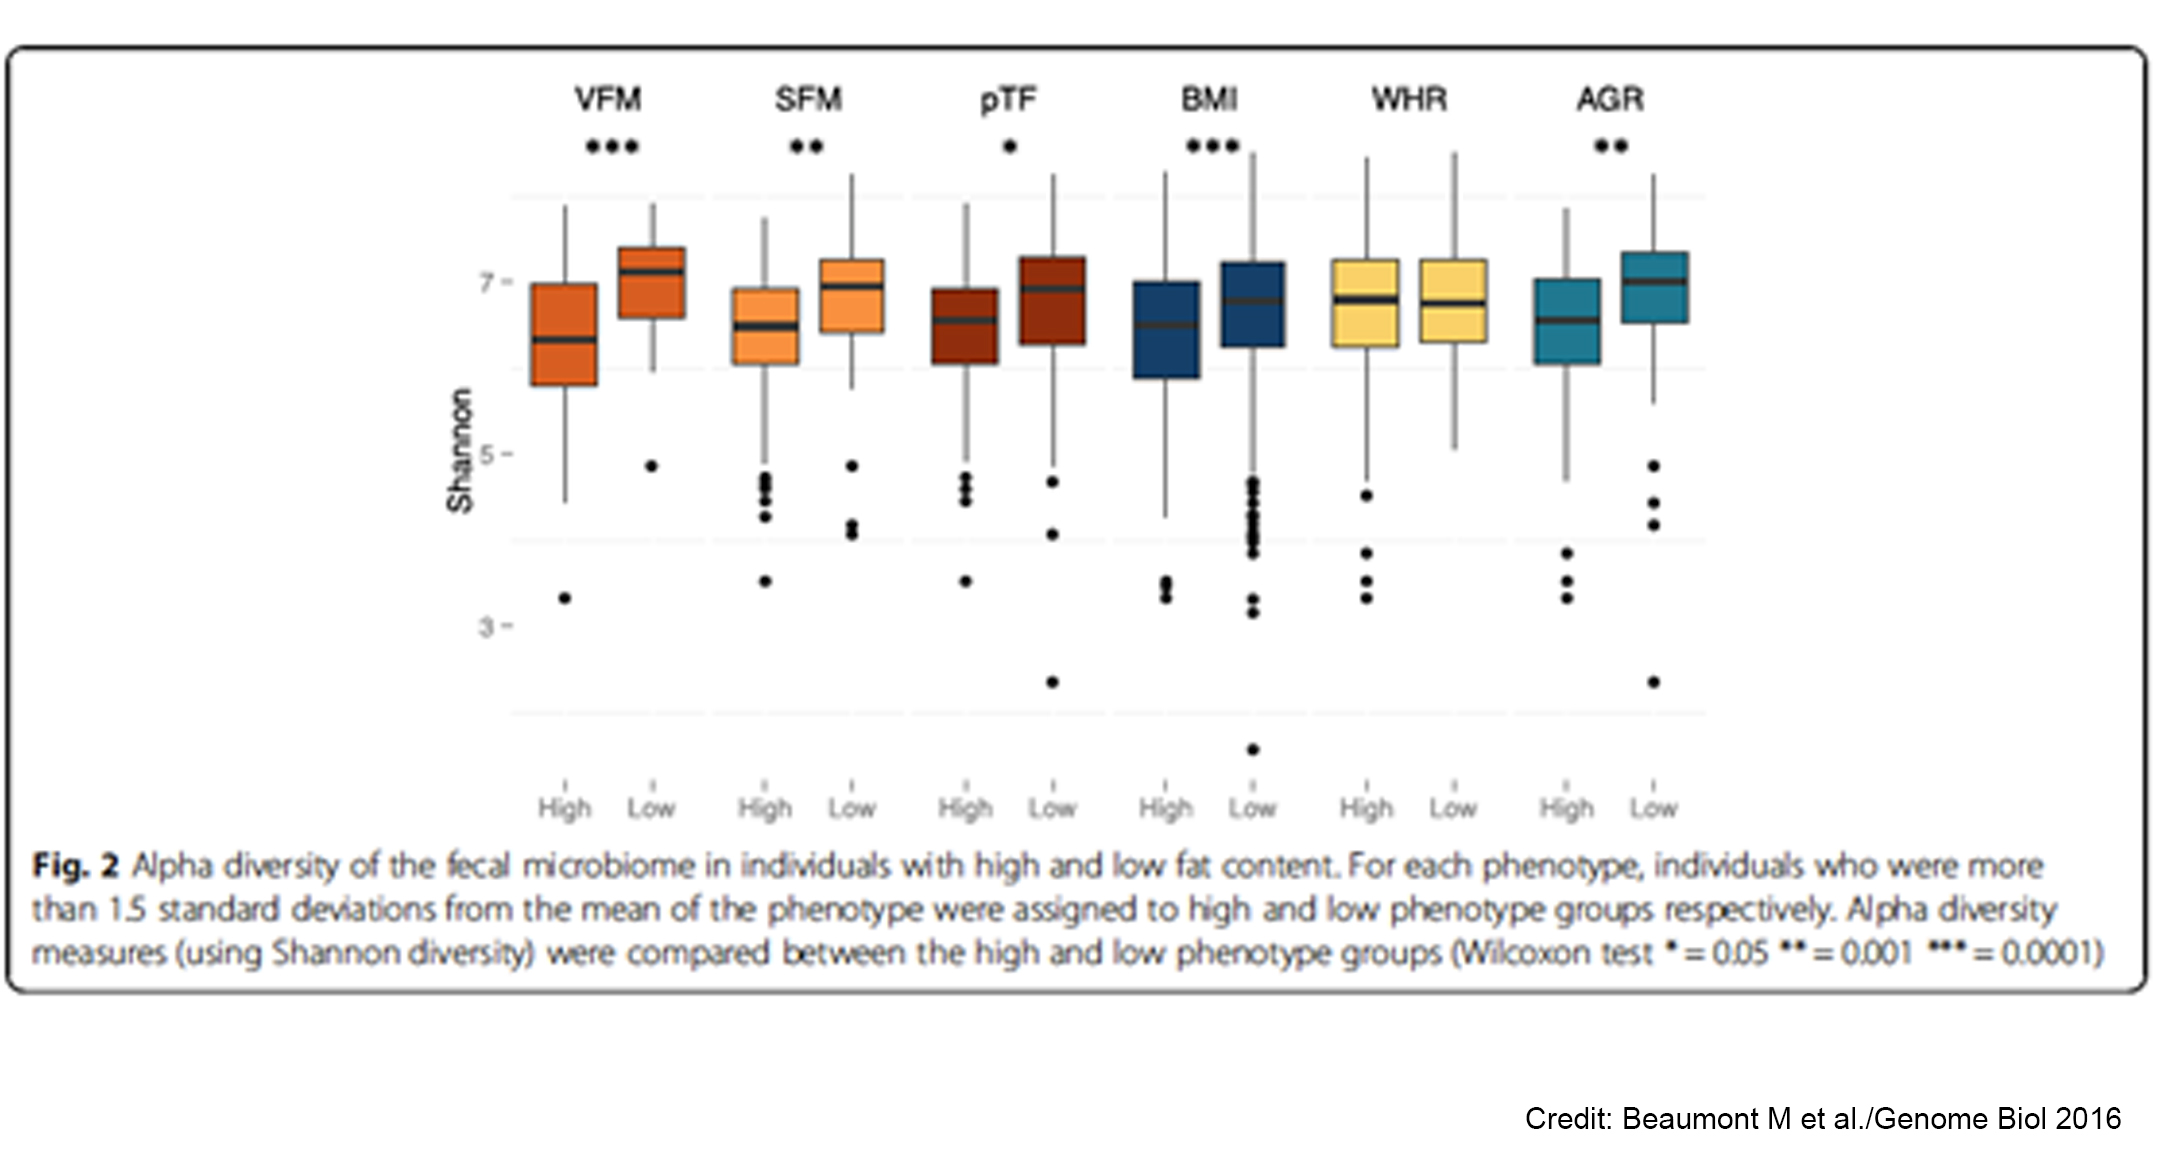 Heritable faecal microbes in humans are associated with